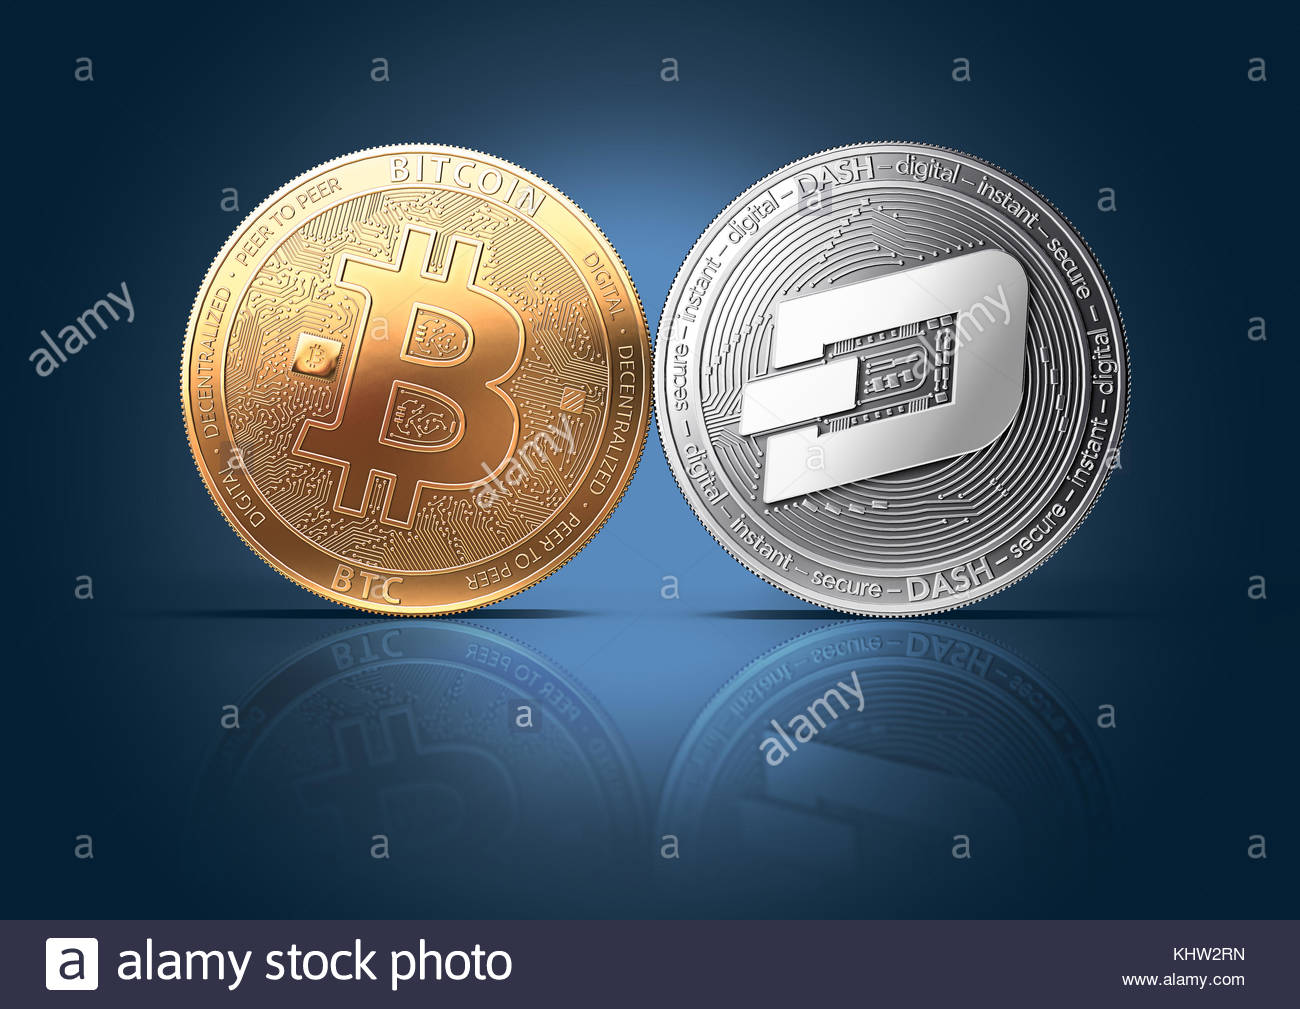 Clash of Bitcoin and Dash coins on a gently lit background with 1300x1009